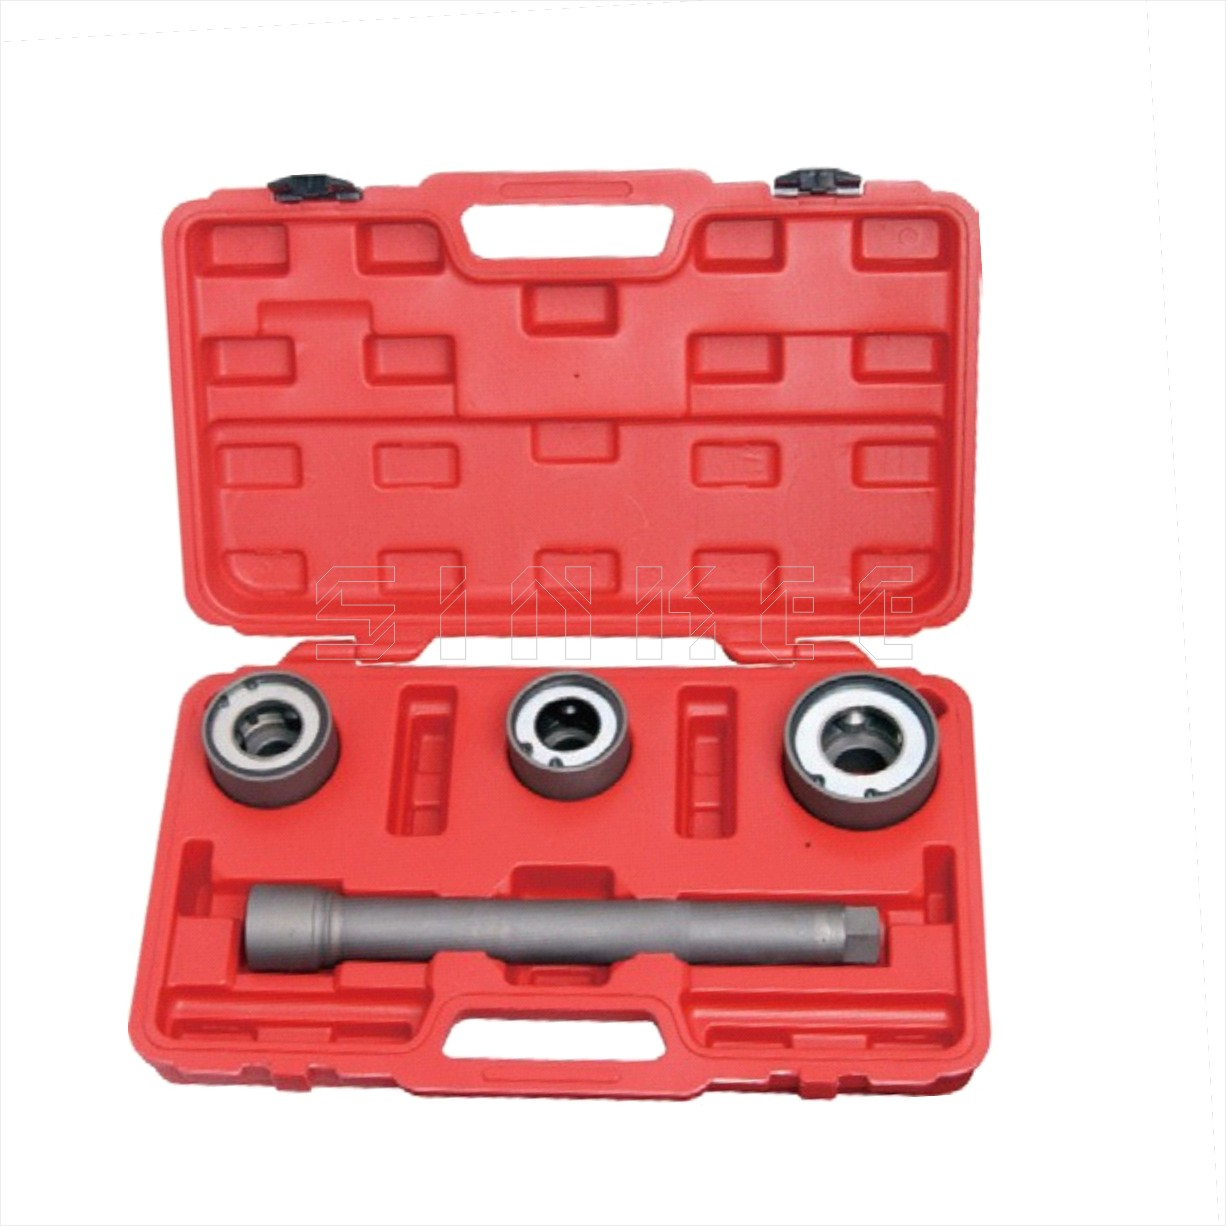 4pc Track Rod End Remover Installer Tool Kit Steering Rack Tie Rod End Axial Joint 30-35mm 35-40mm 40-45mm SK1048